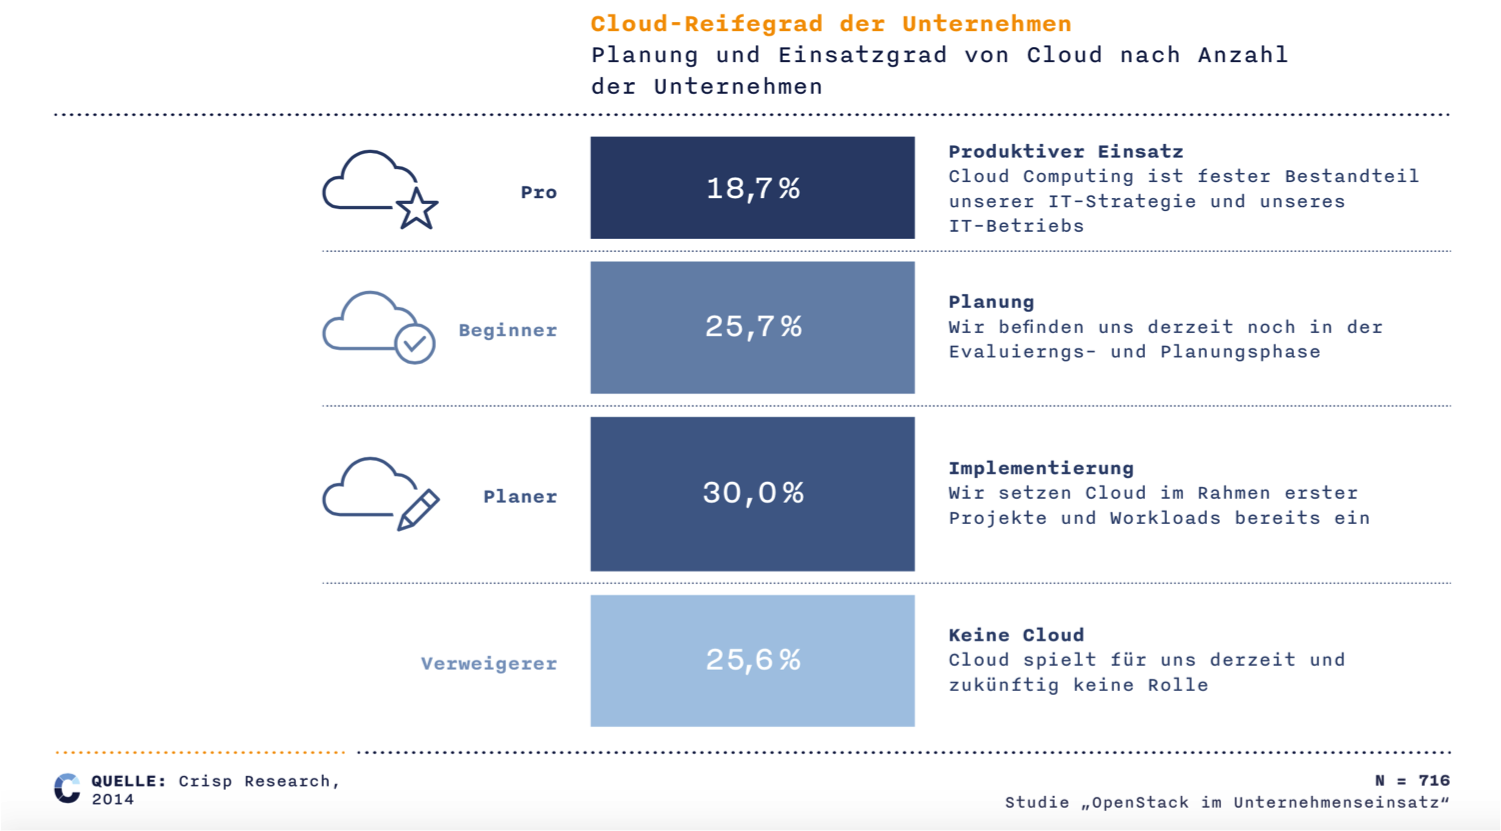 Cloud-Reifegrad Deutschland 2014 (Grafik: Crisp Research)